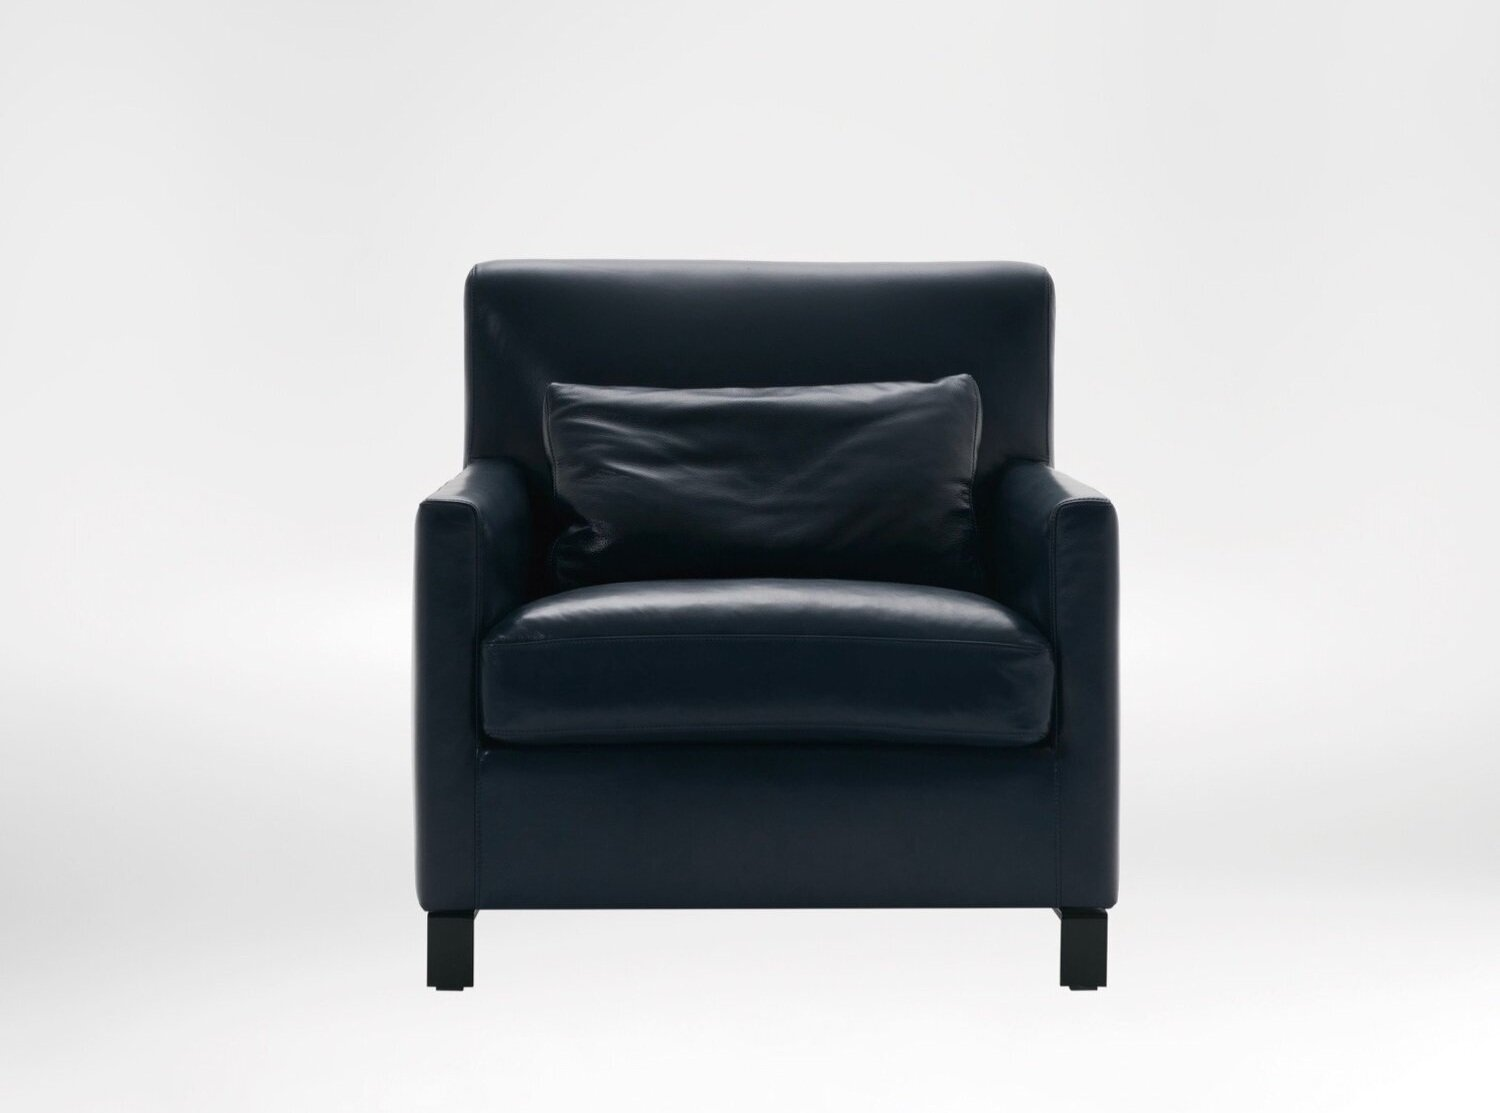 talk chair - Style, comfort, and durability with a small foot print that fits most living spaces.